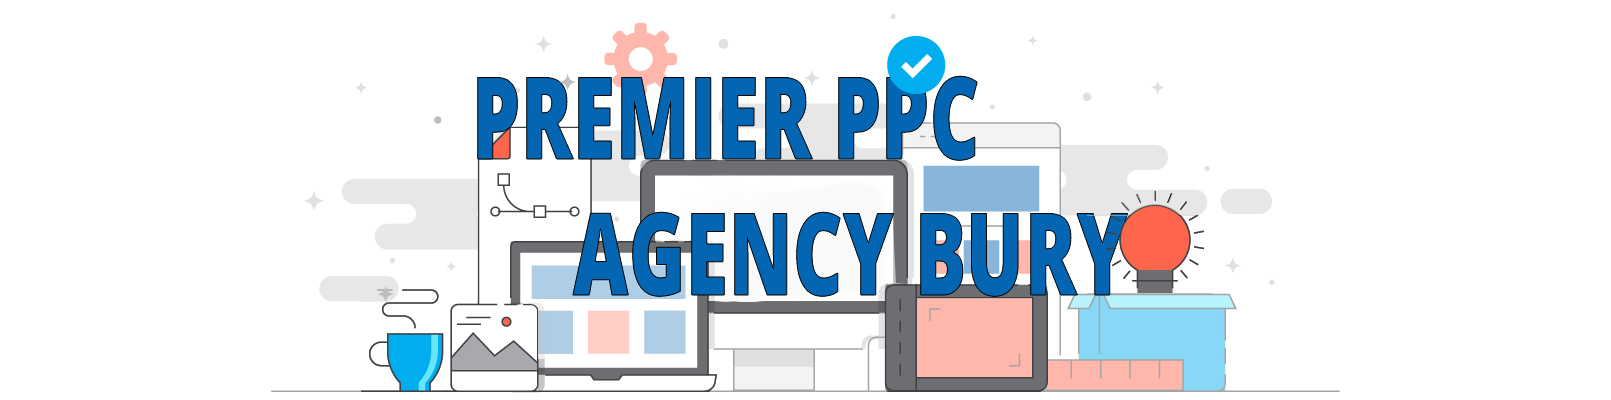 ppc advertising company in Bury: control your online reach